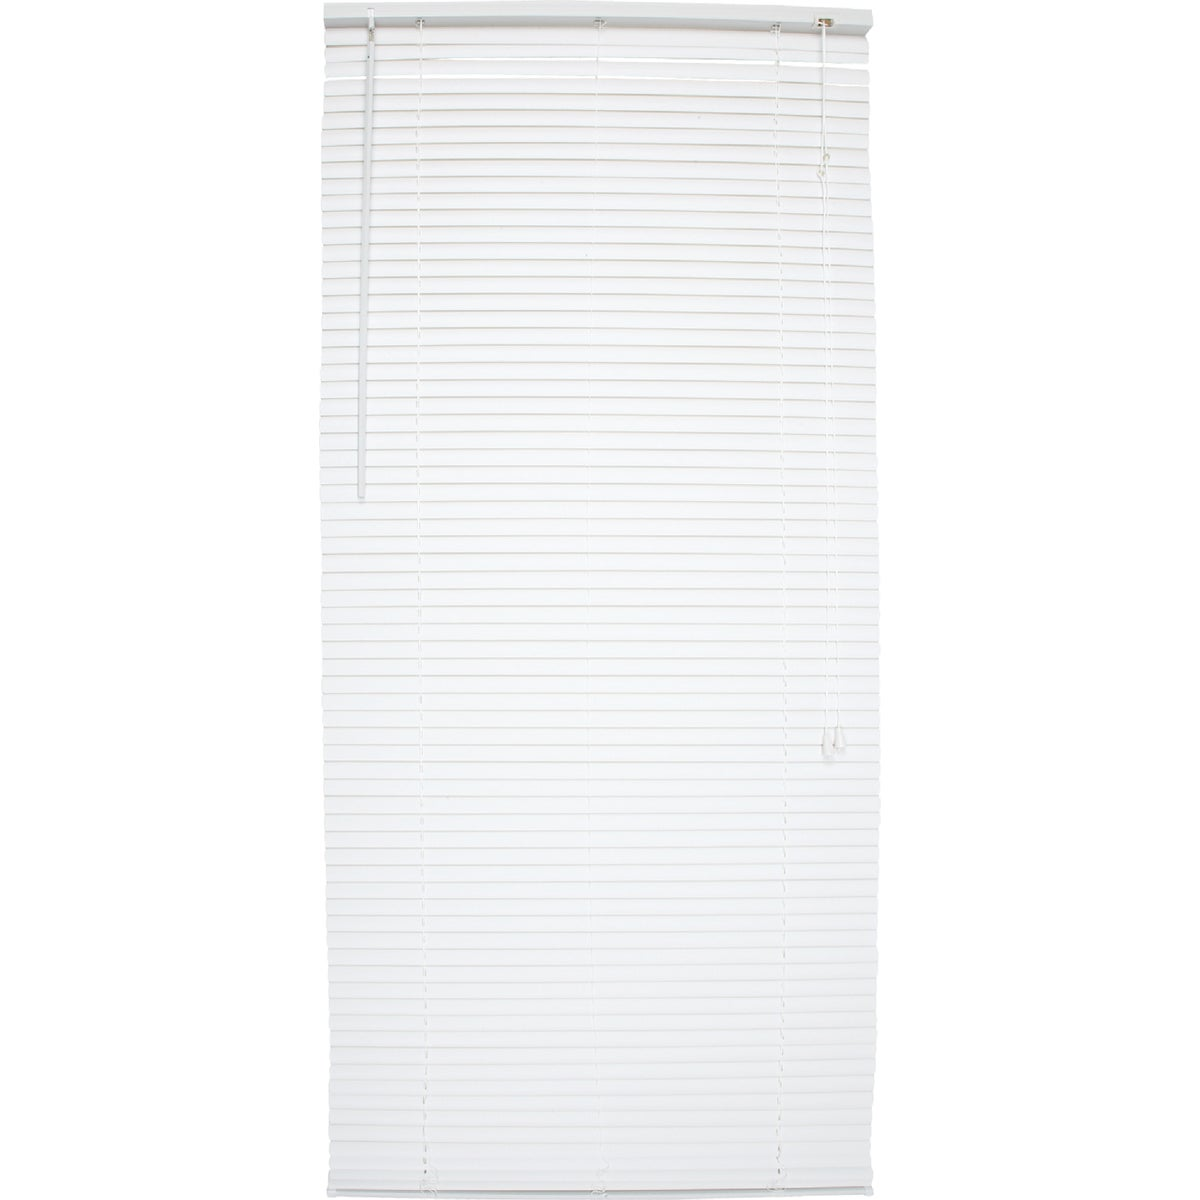 22X64 WHITE MINI BLIND - 614874 by Lotus Wind Incom